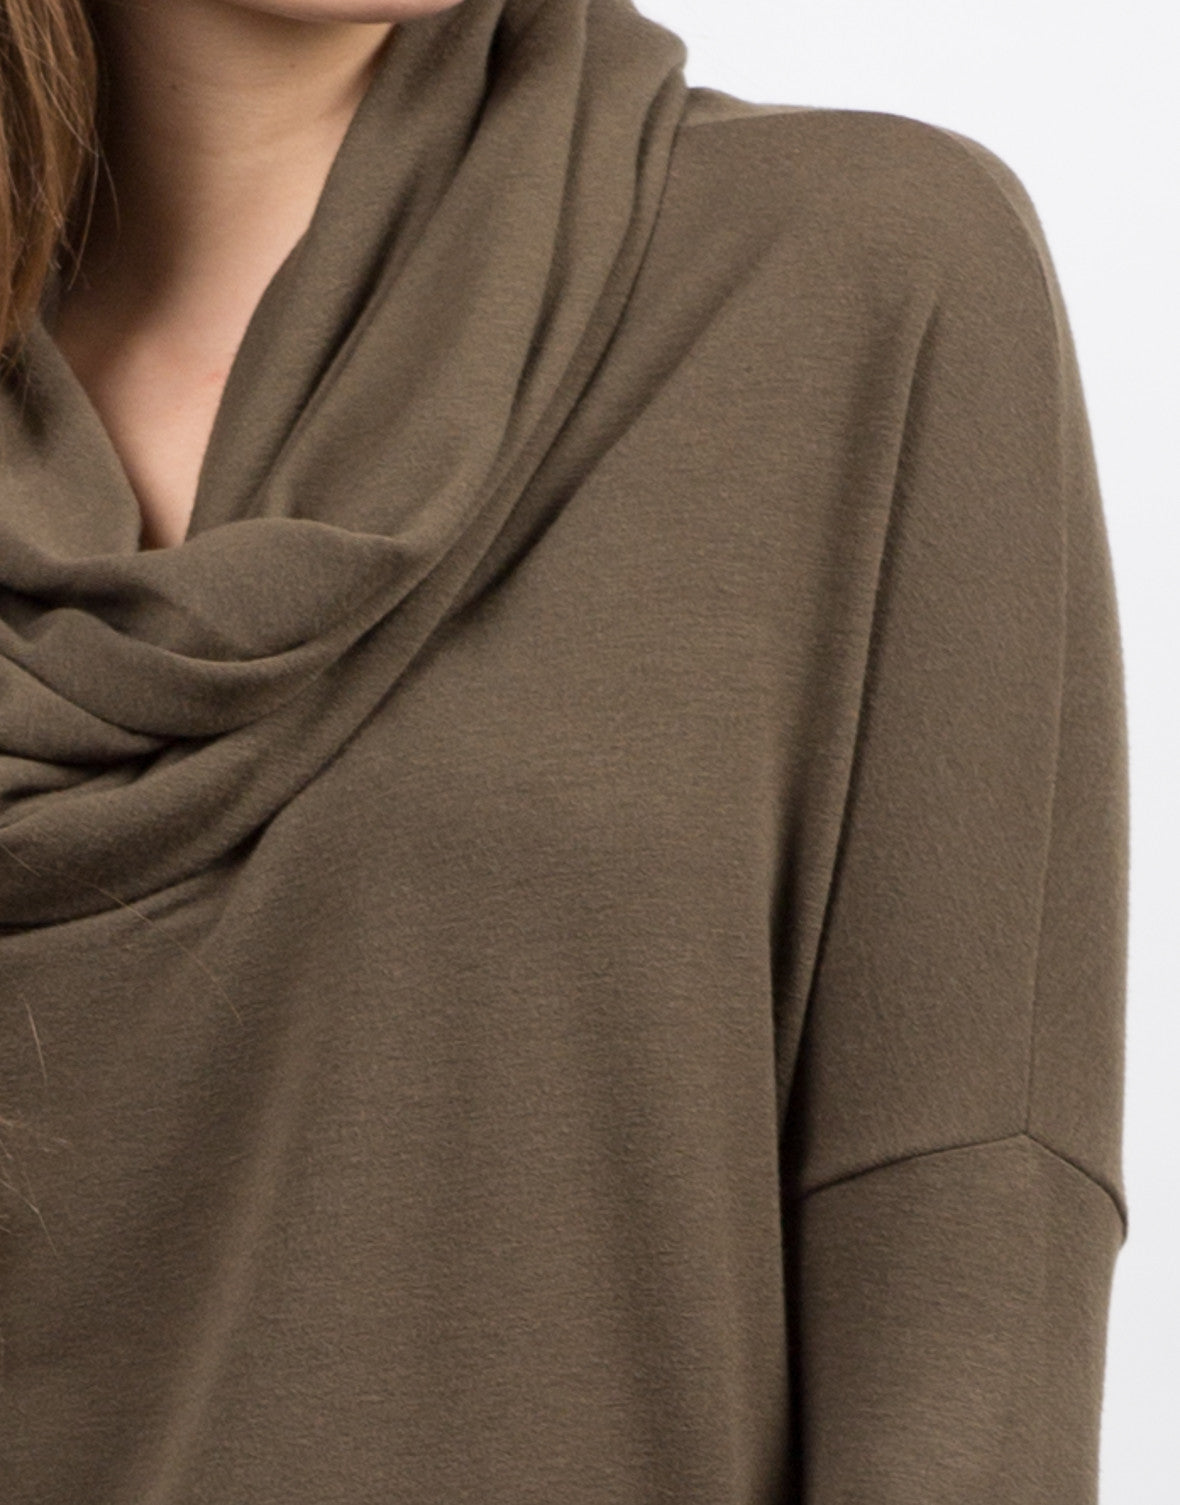 Detail of Super Soft Cowl Neck Top